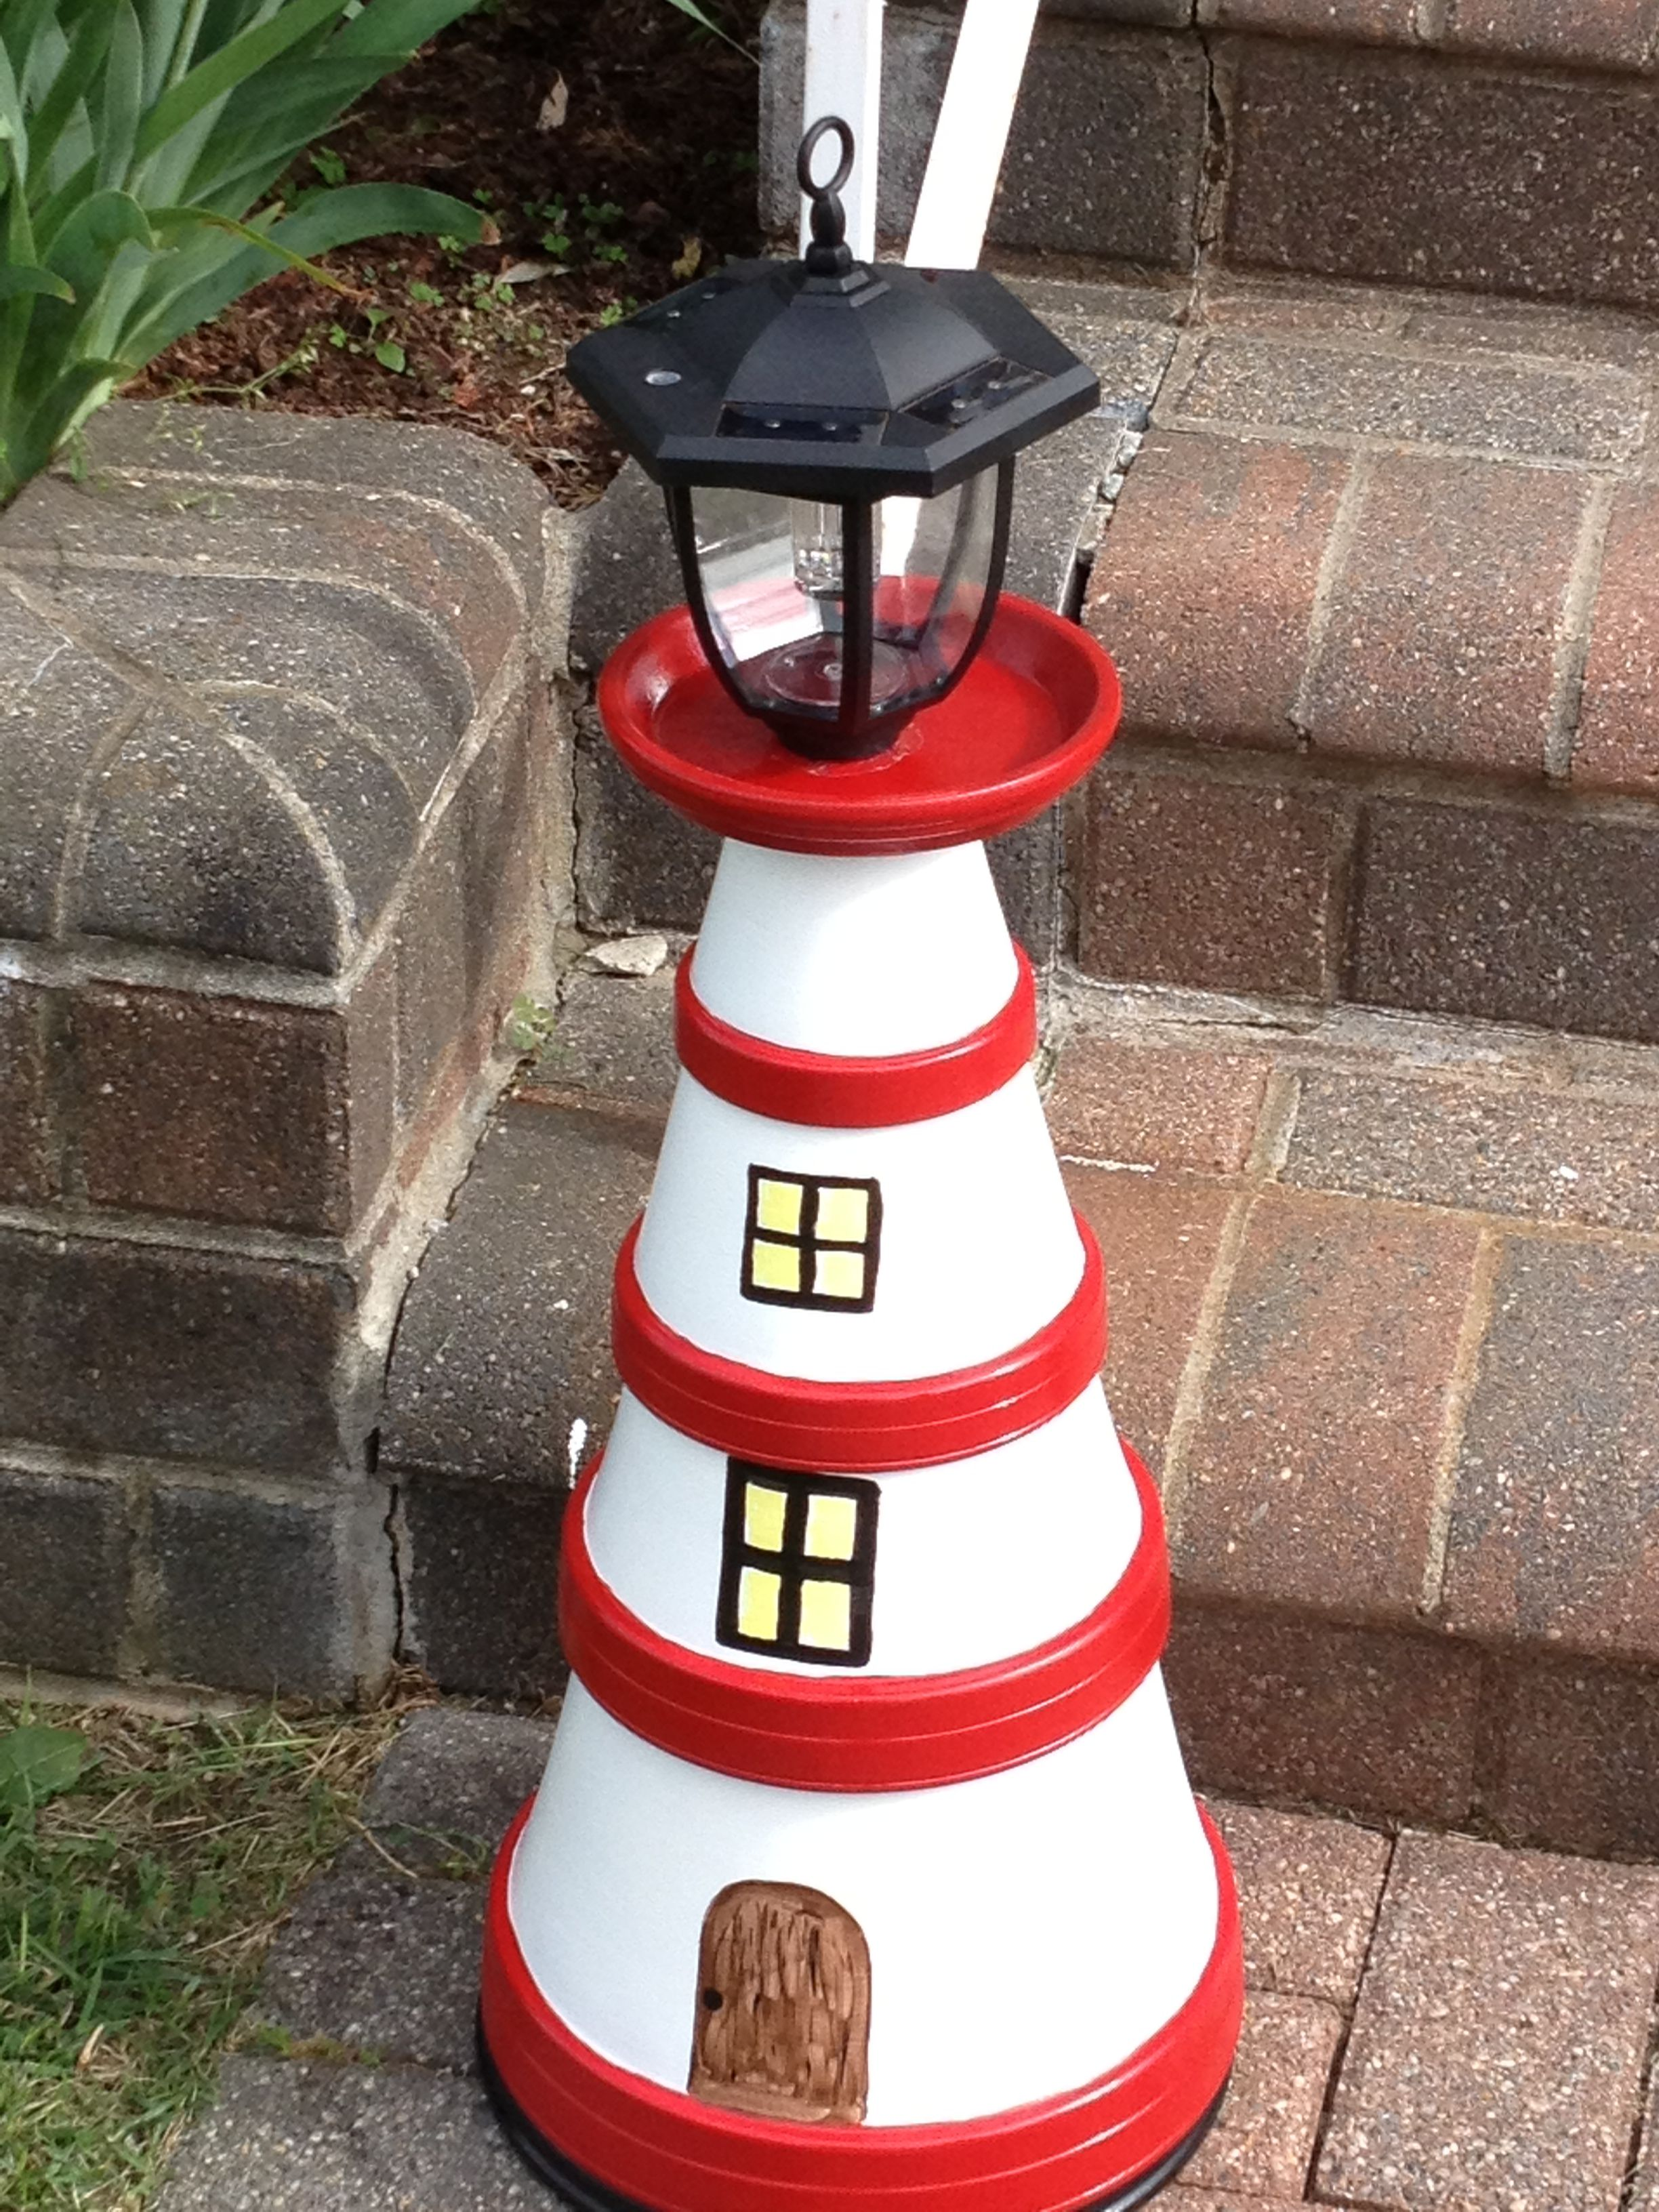 my second light house from clay pots. they are in the front of our